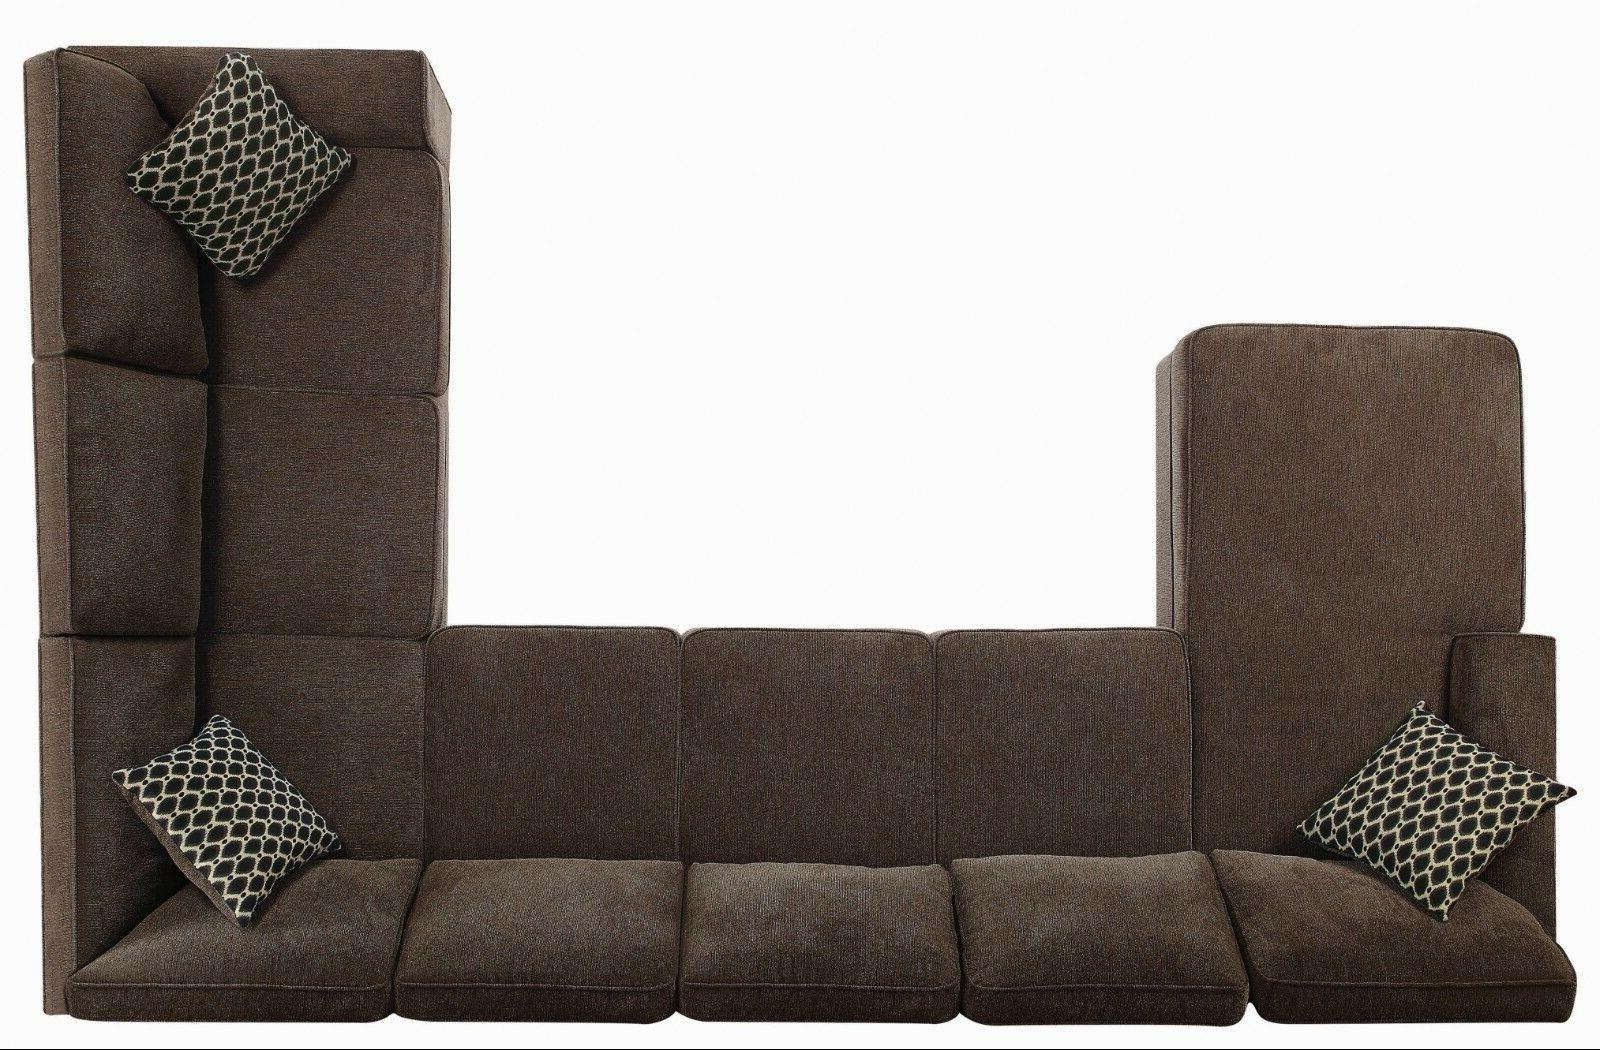 Transitional 7-Seater Fabric Sectional Sofa with Storage Brown